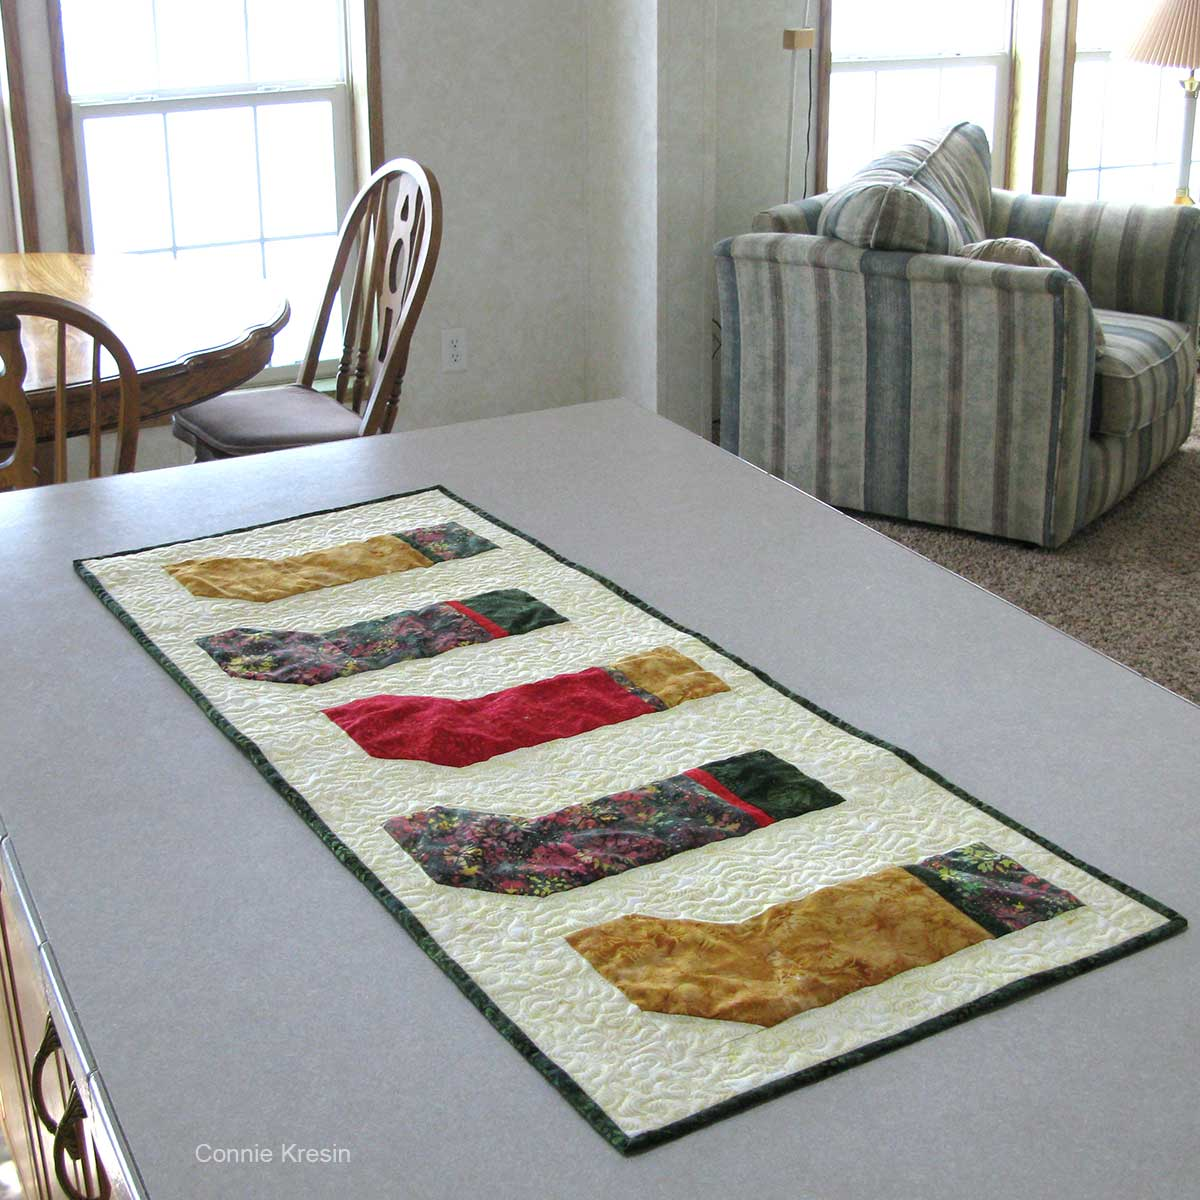 Table runner on bar in the kitchen